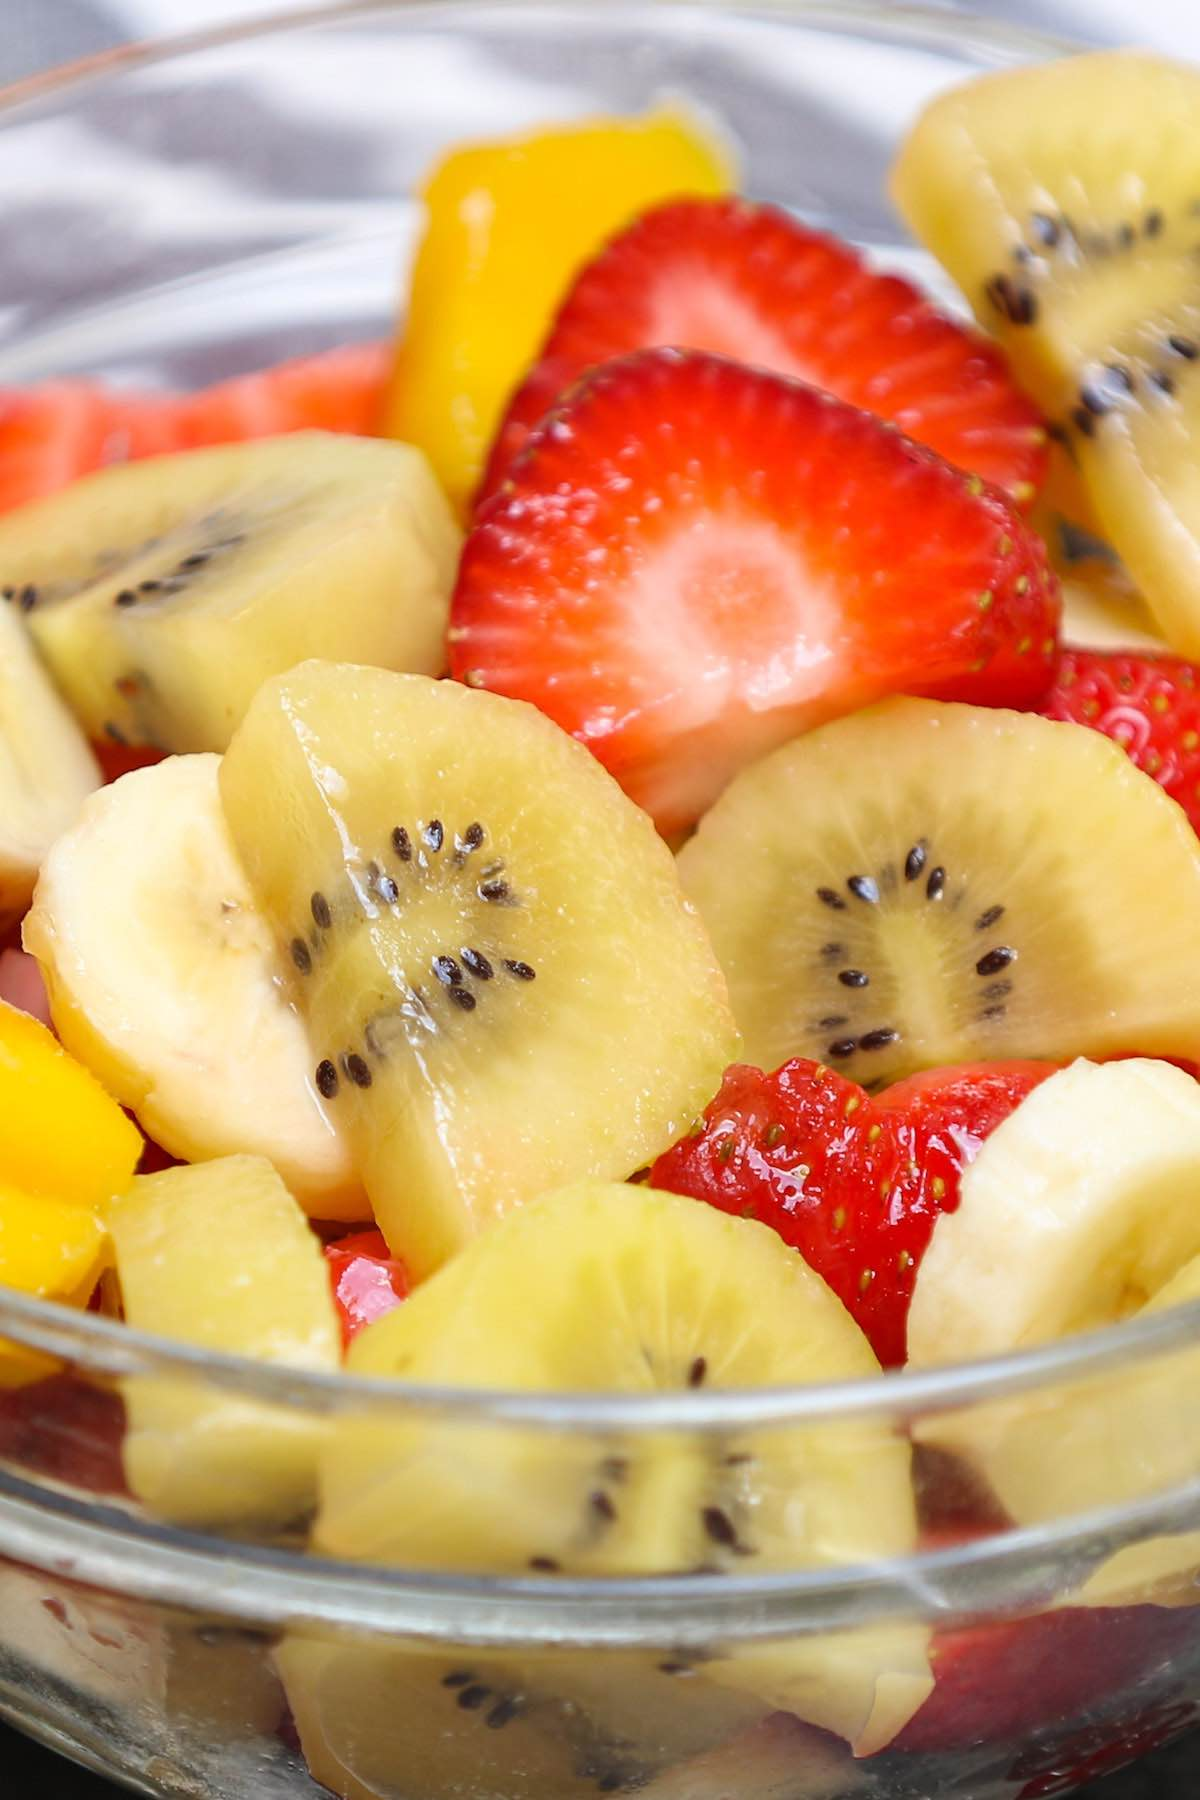 Tropical fruit salad in a serving bowl